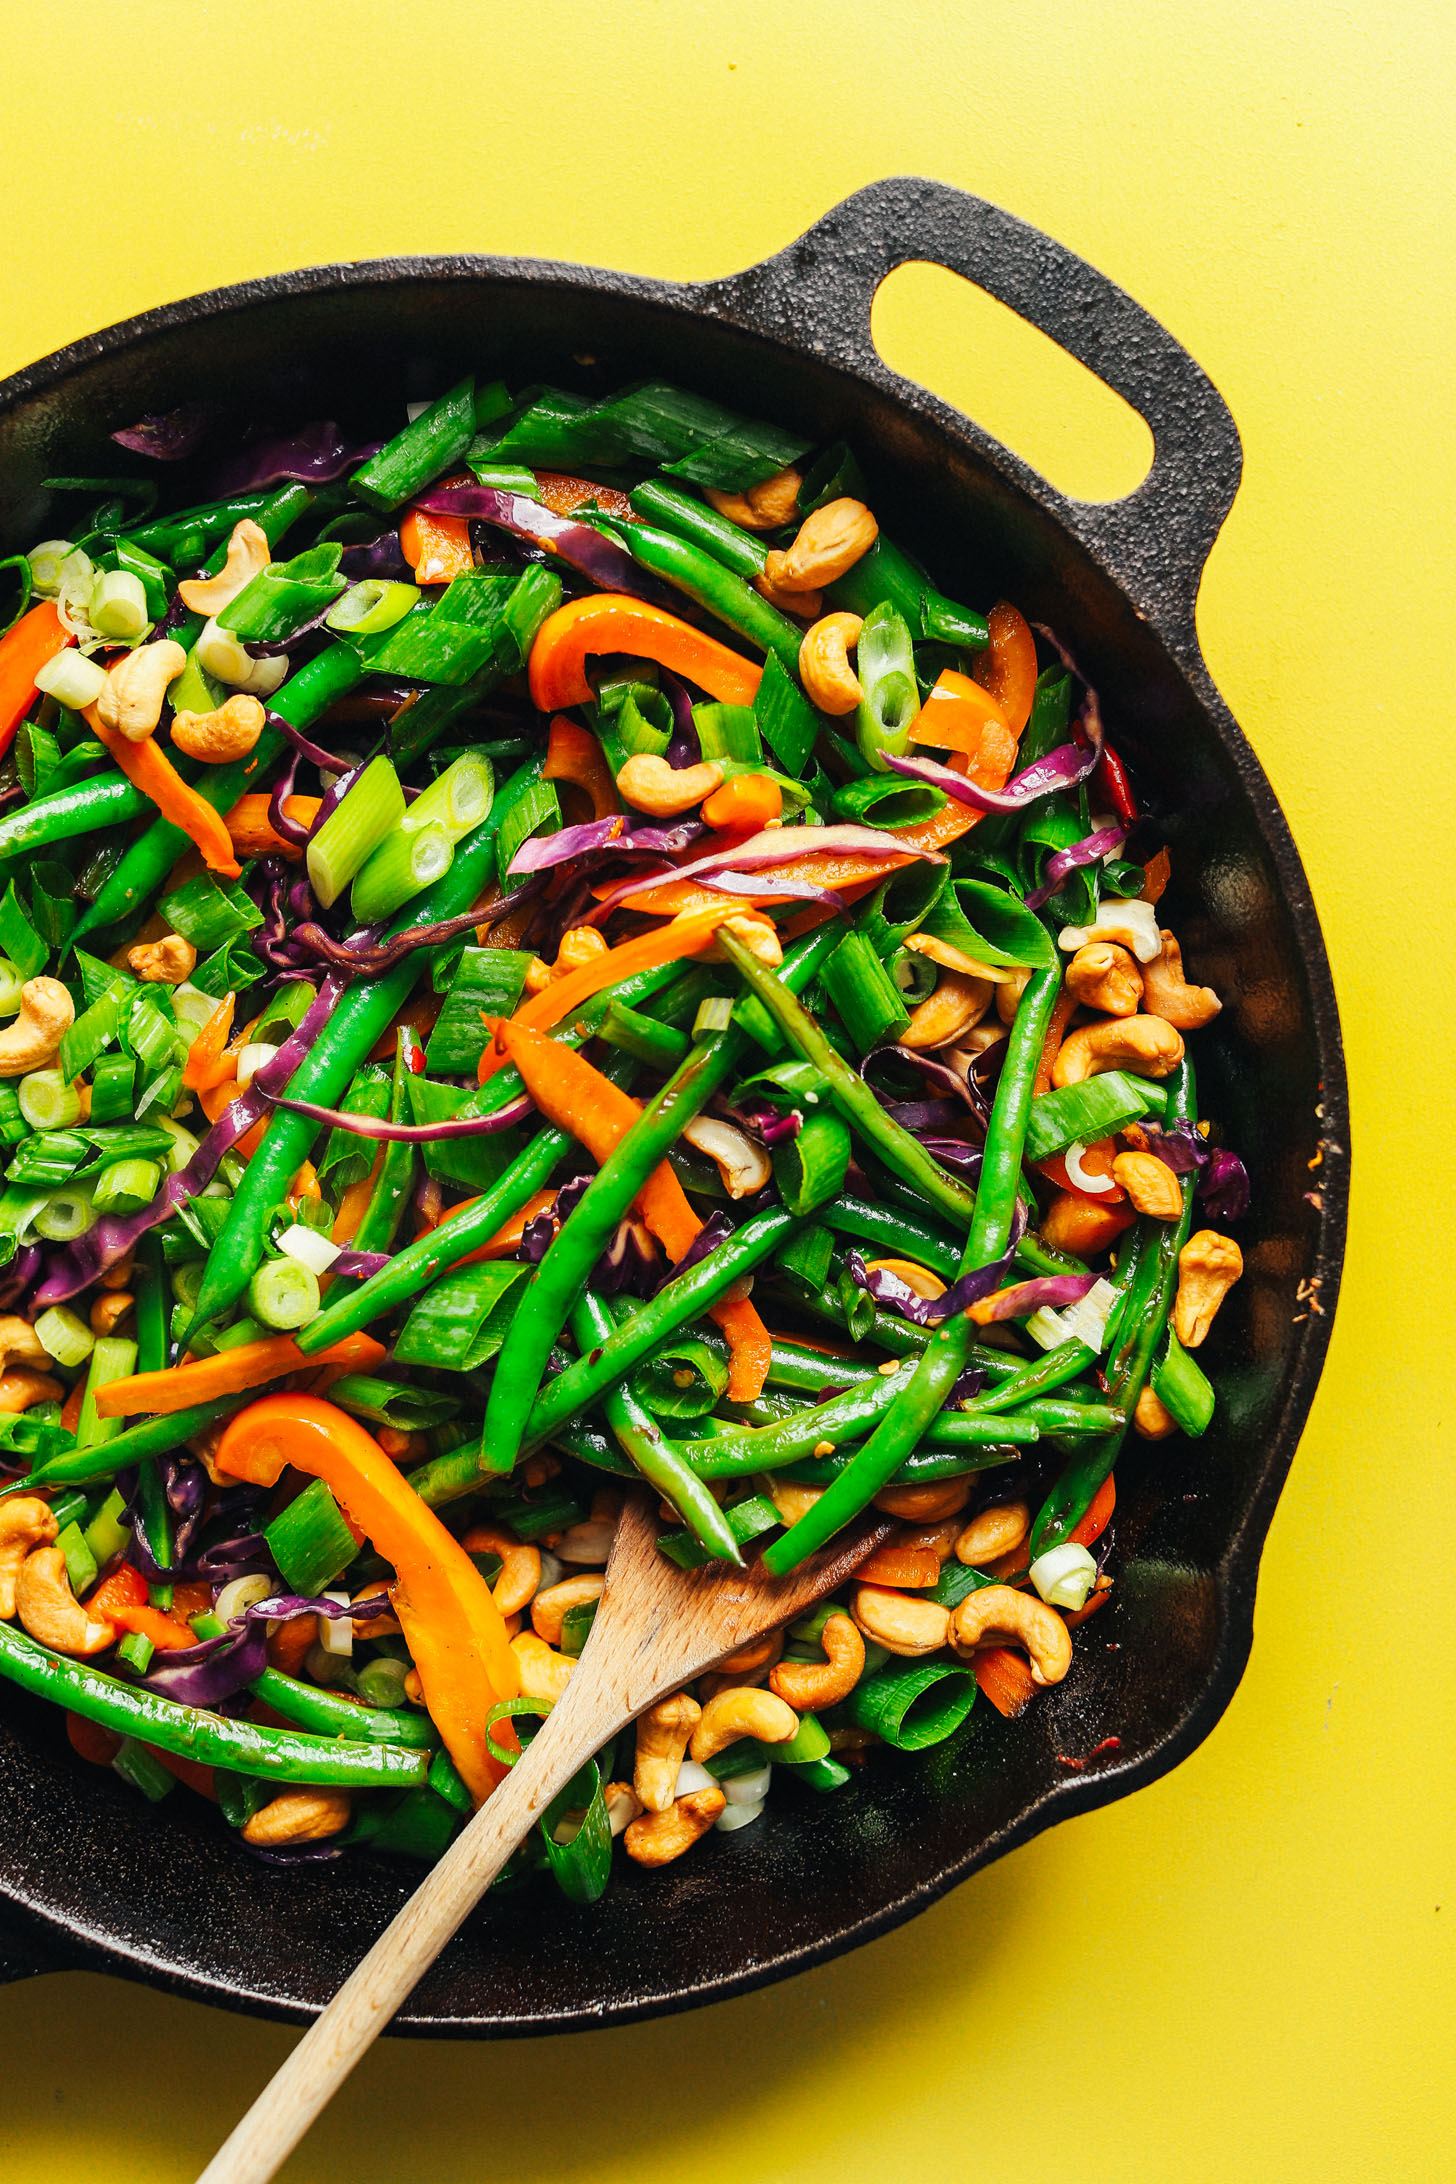 Cast iron skillet with colorful fresh vegetables for satisfying vegan Cauliflower Rice Stir Fry